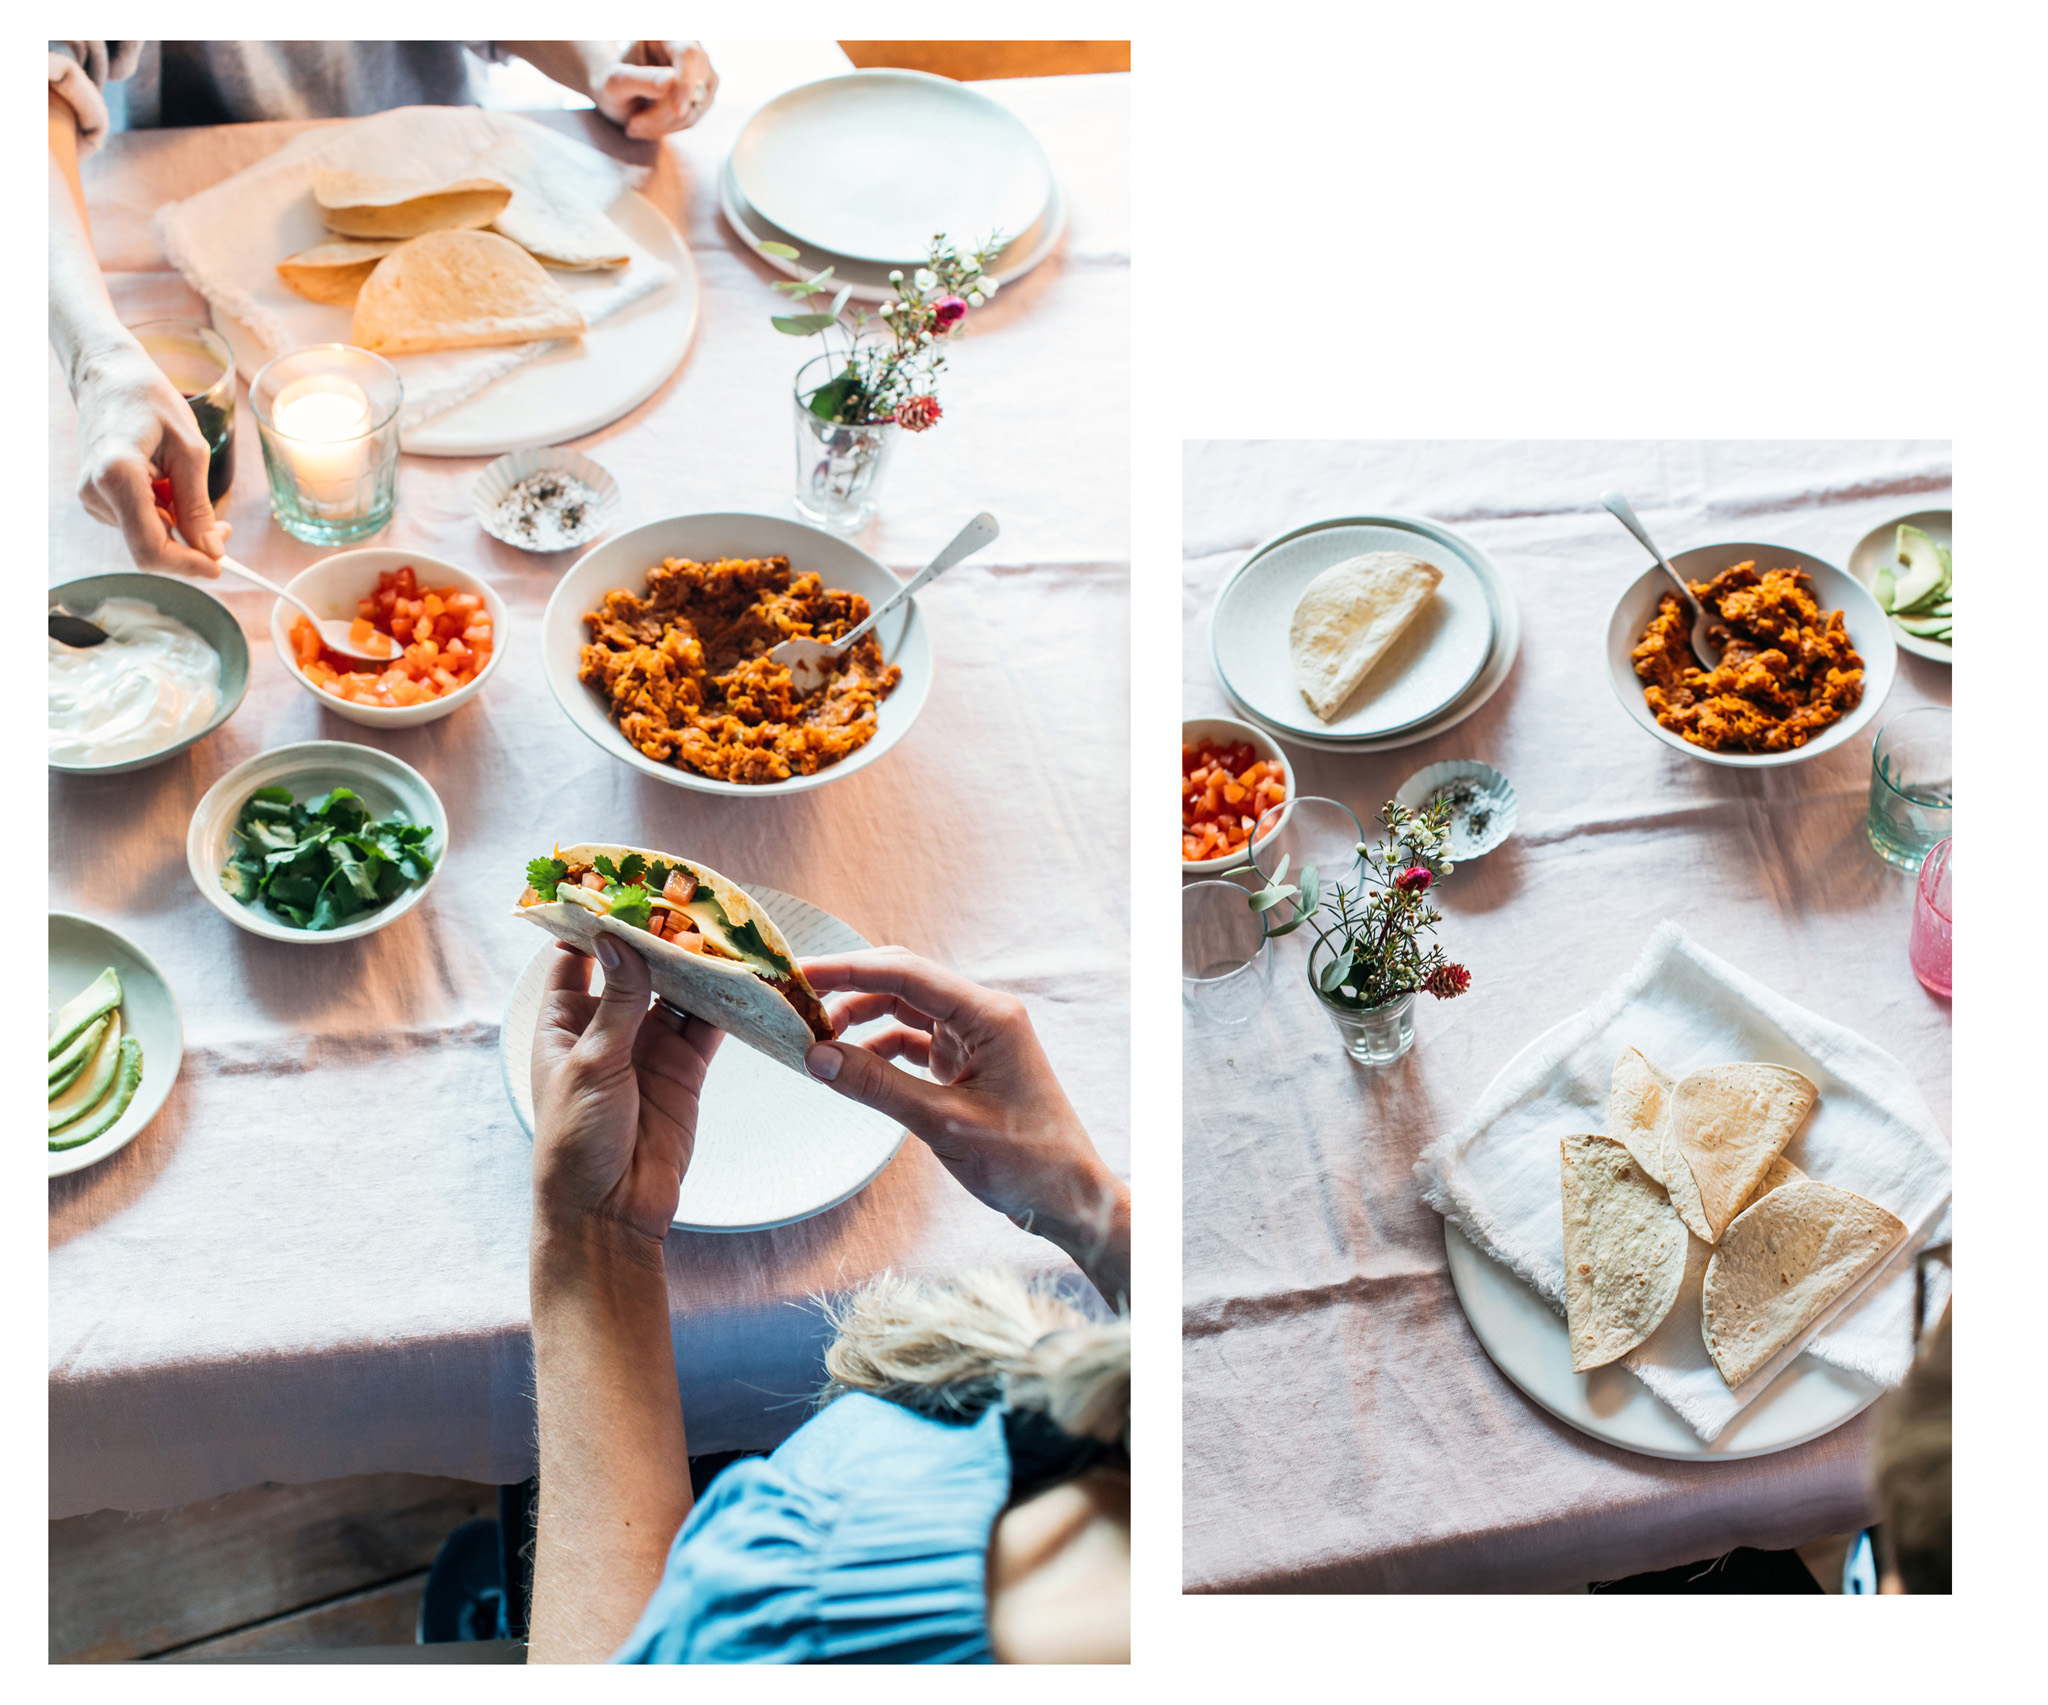 Food and recipe photography for The Gut Health Doctor by Megan Rossi